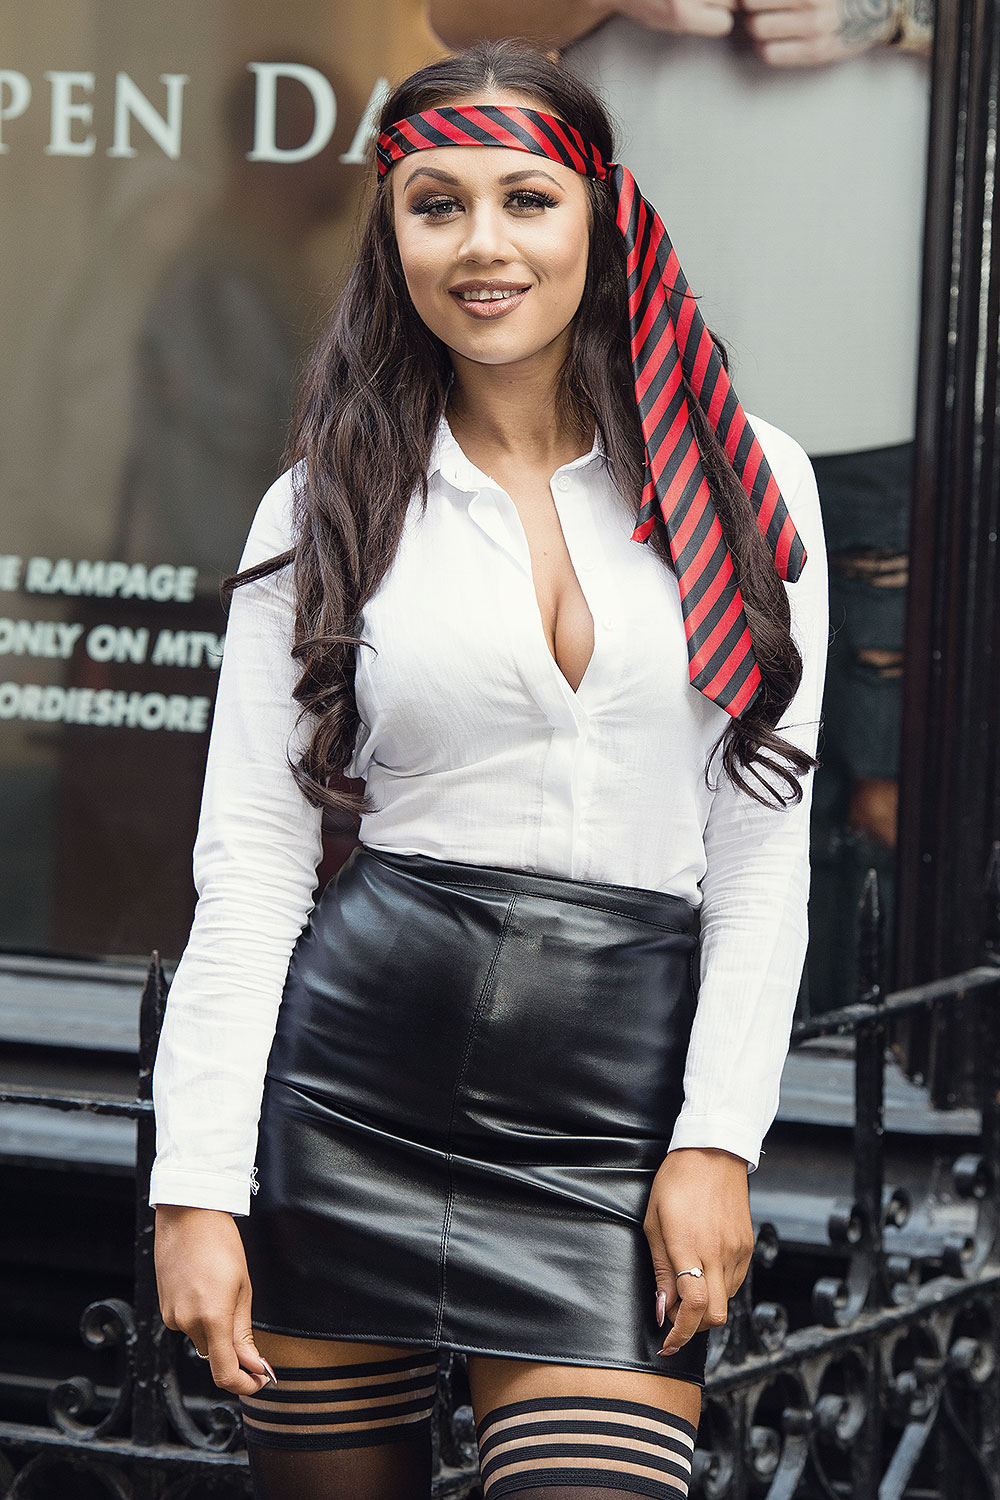 Chelsea Barber attends the Geordie Shore Radge Academy open day